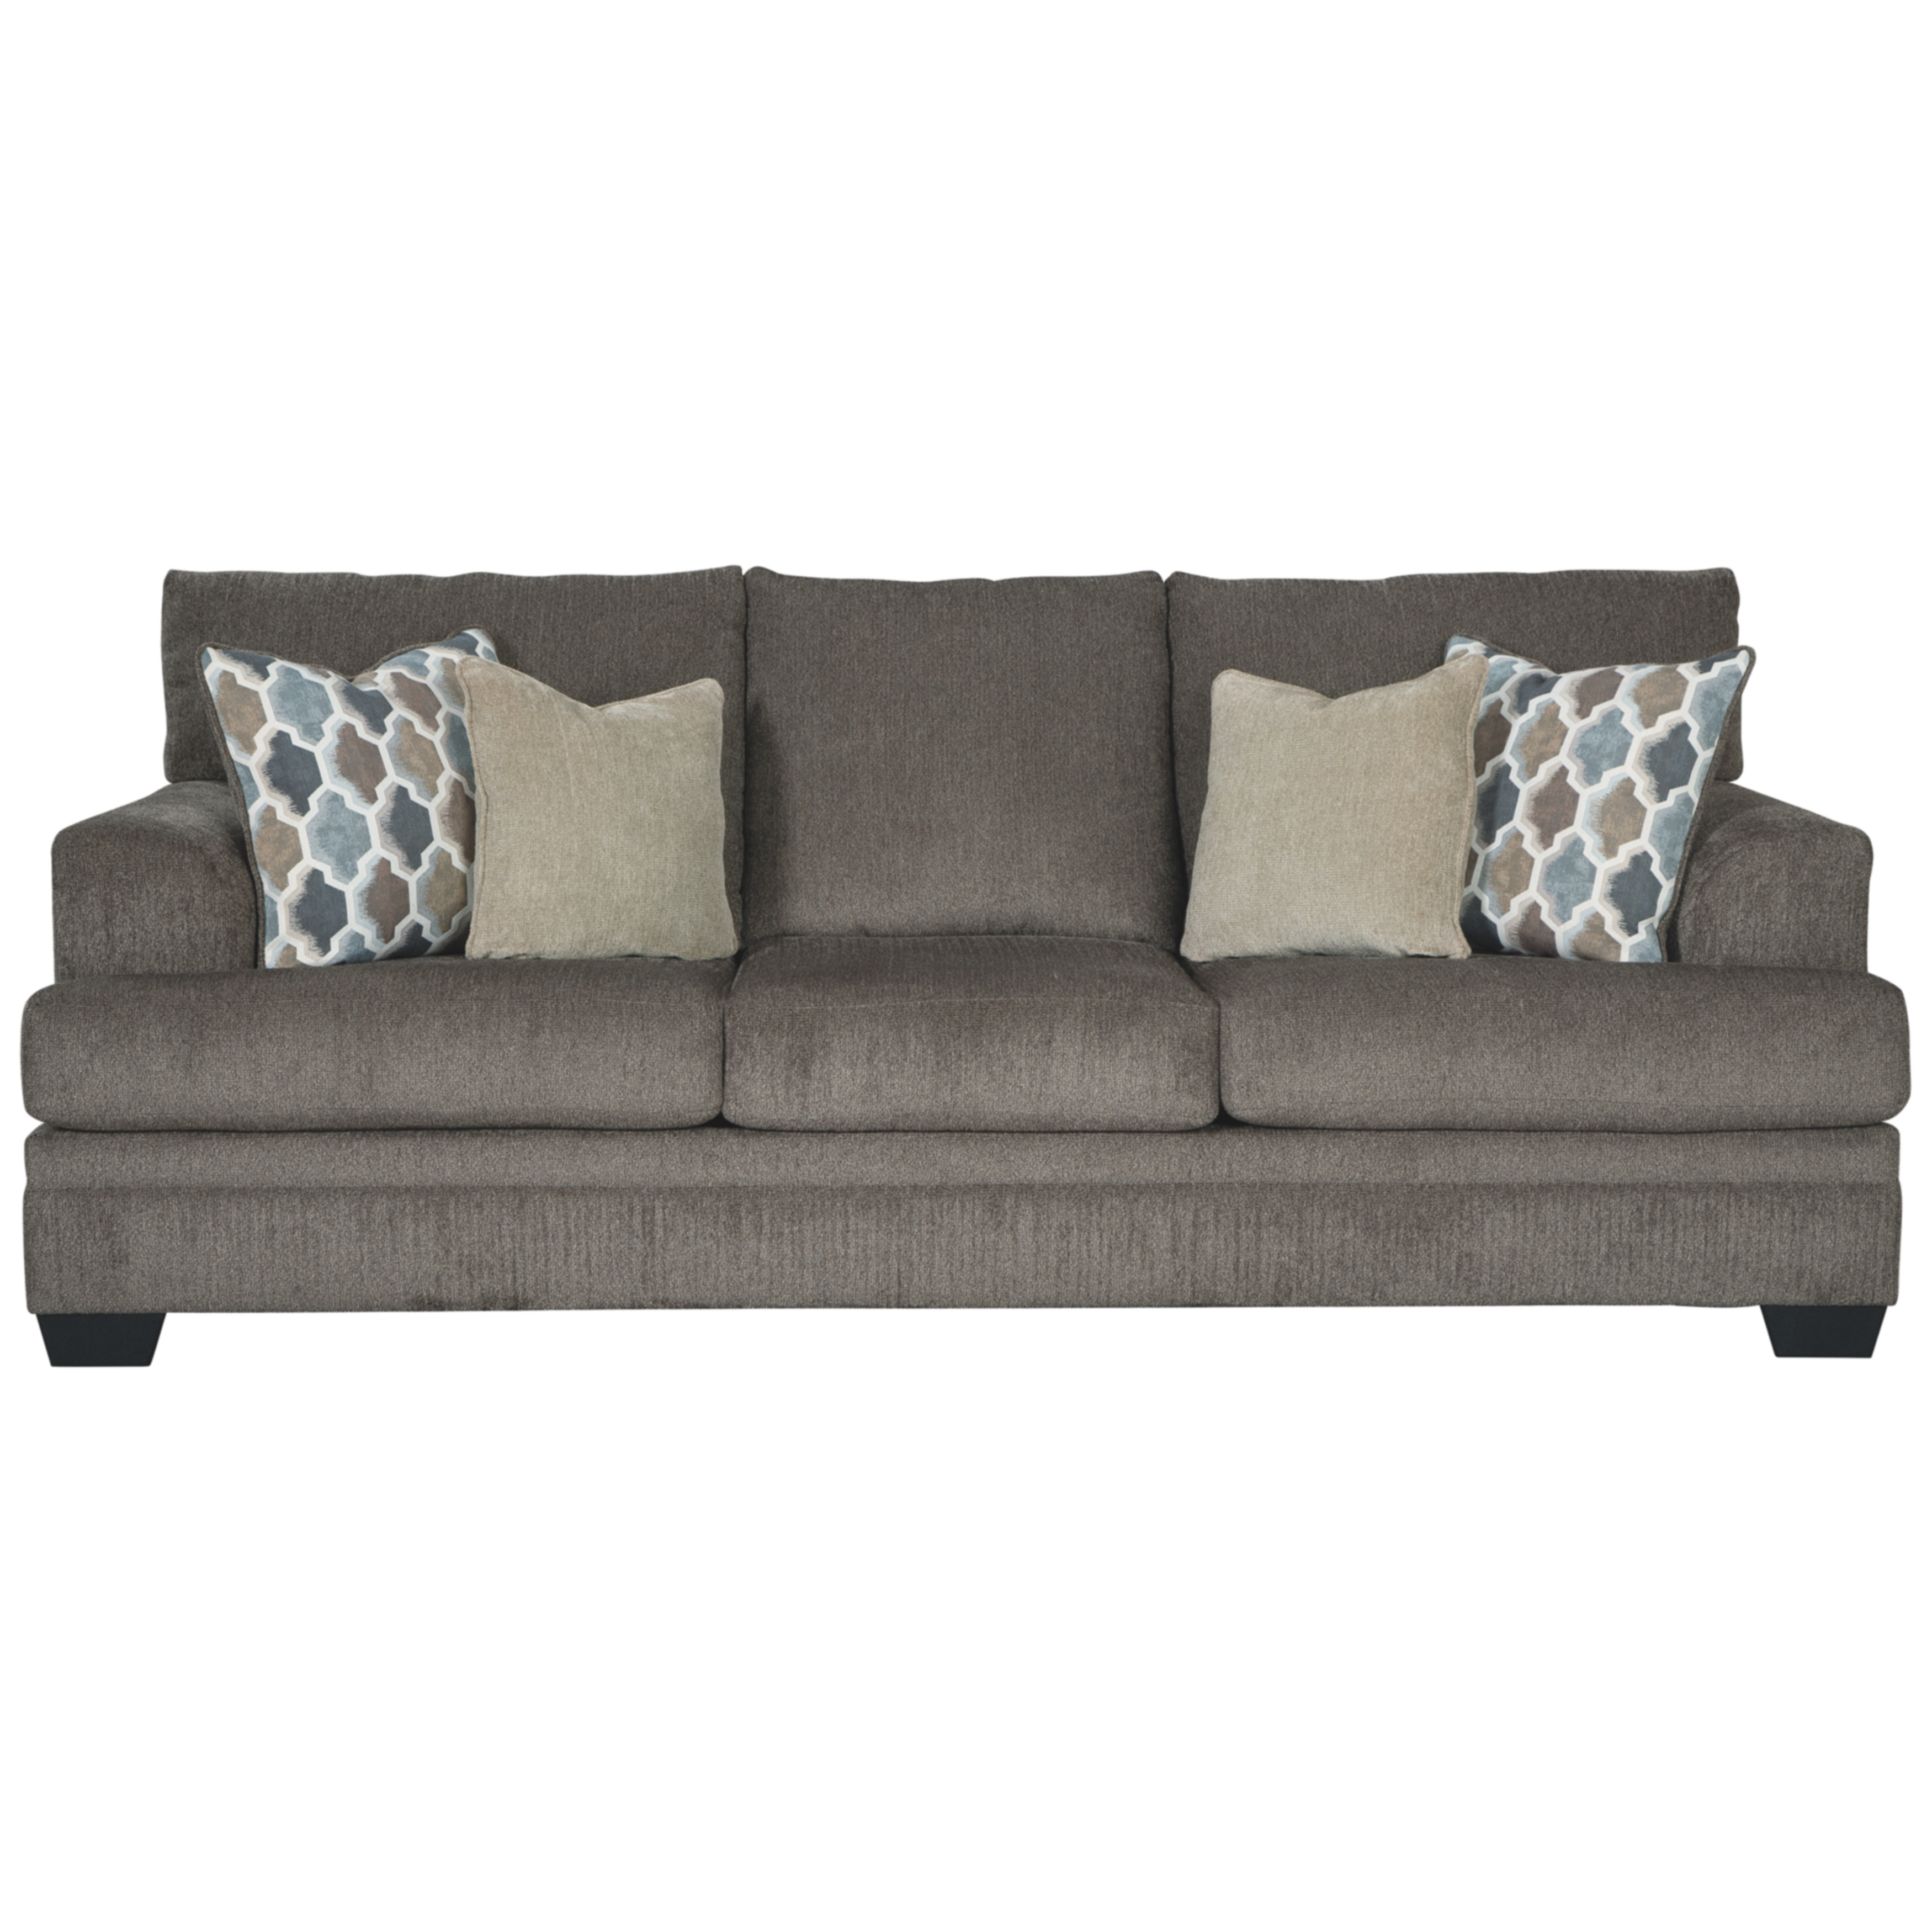 Outstanding Signature Design By Ashley Living Room Furniture Find Home Interior And Landscaping Ologienasavecom